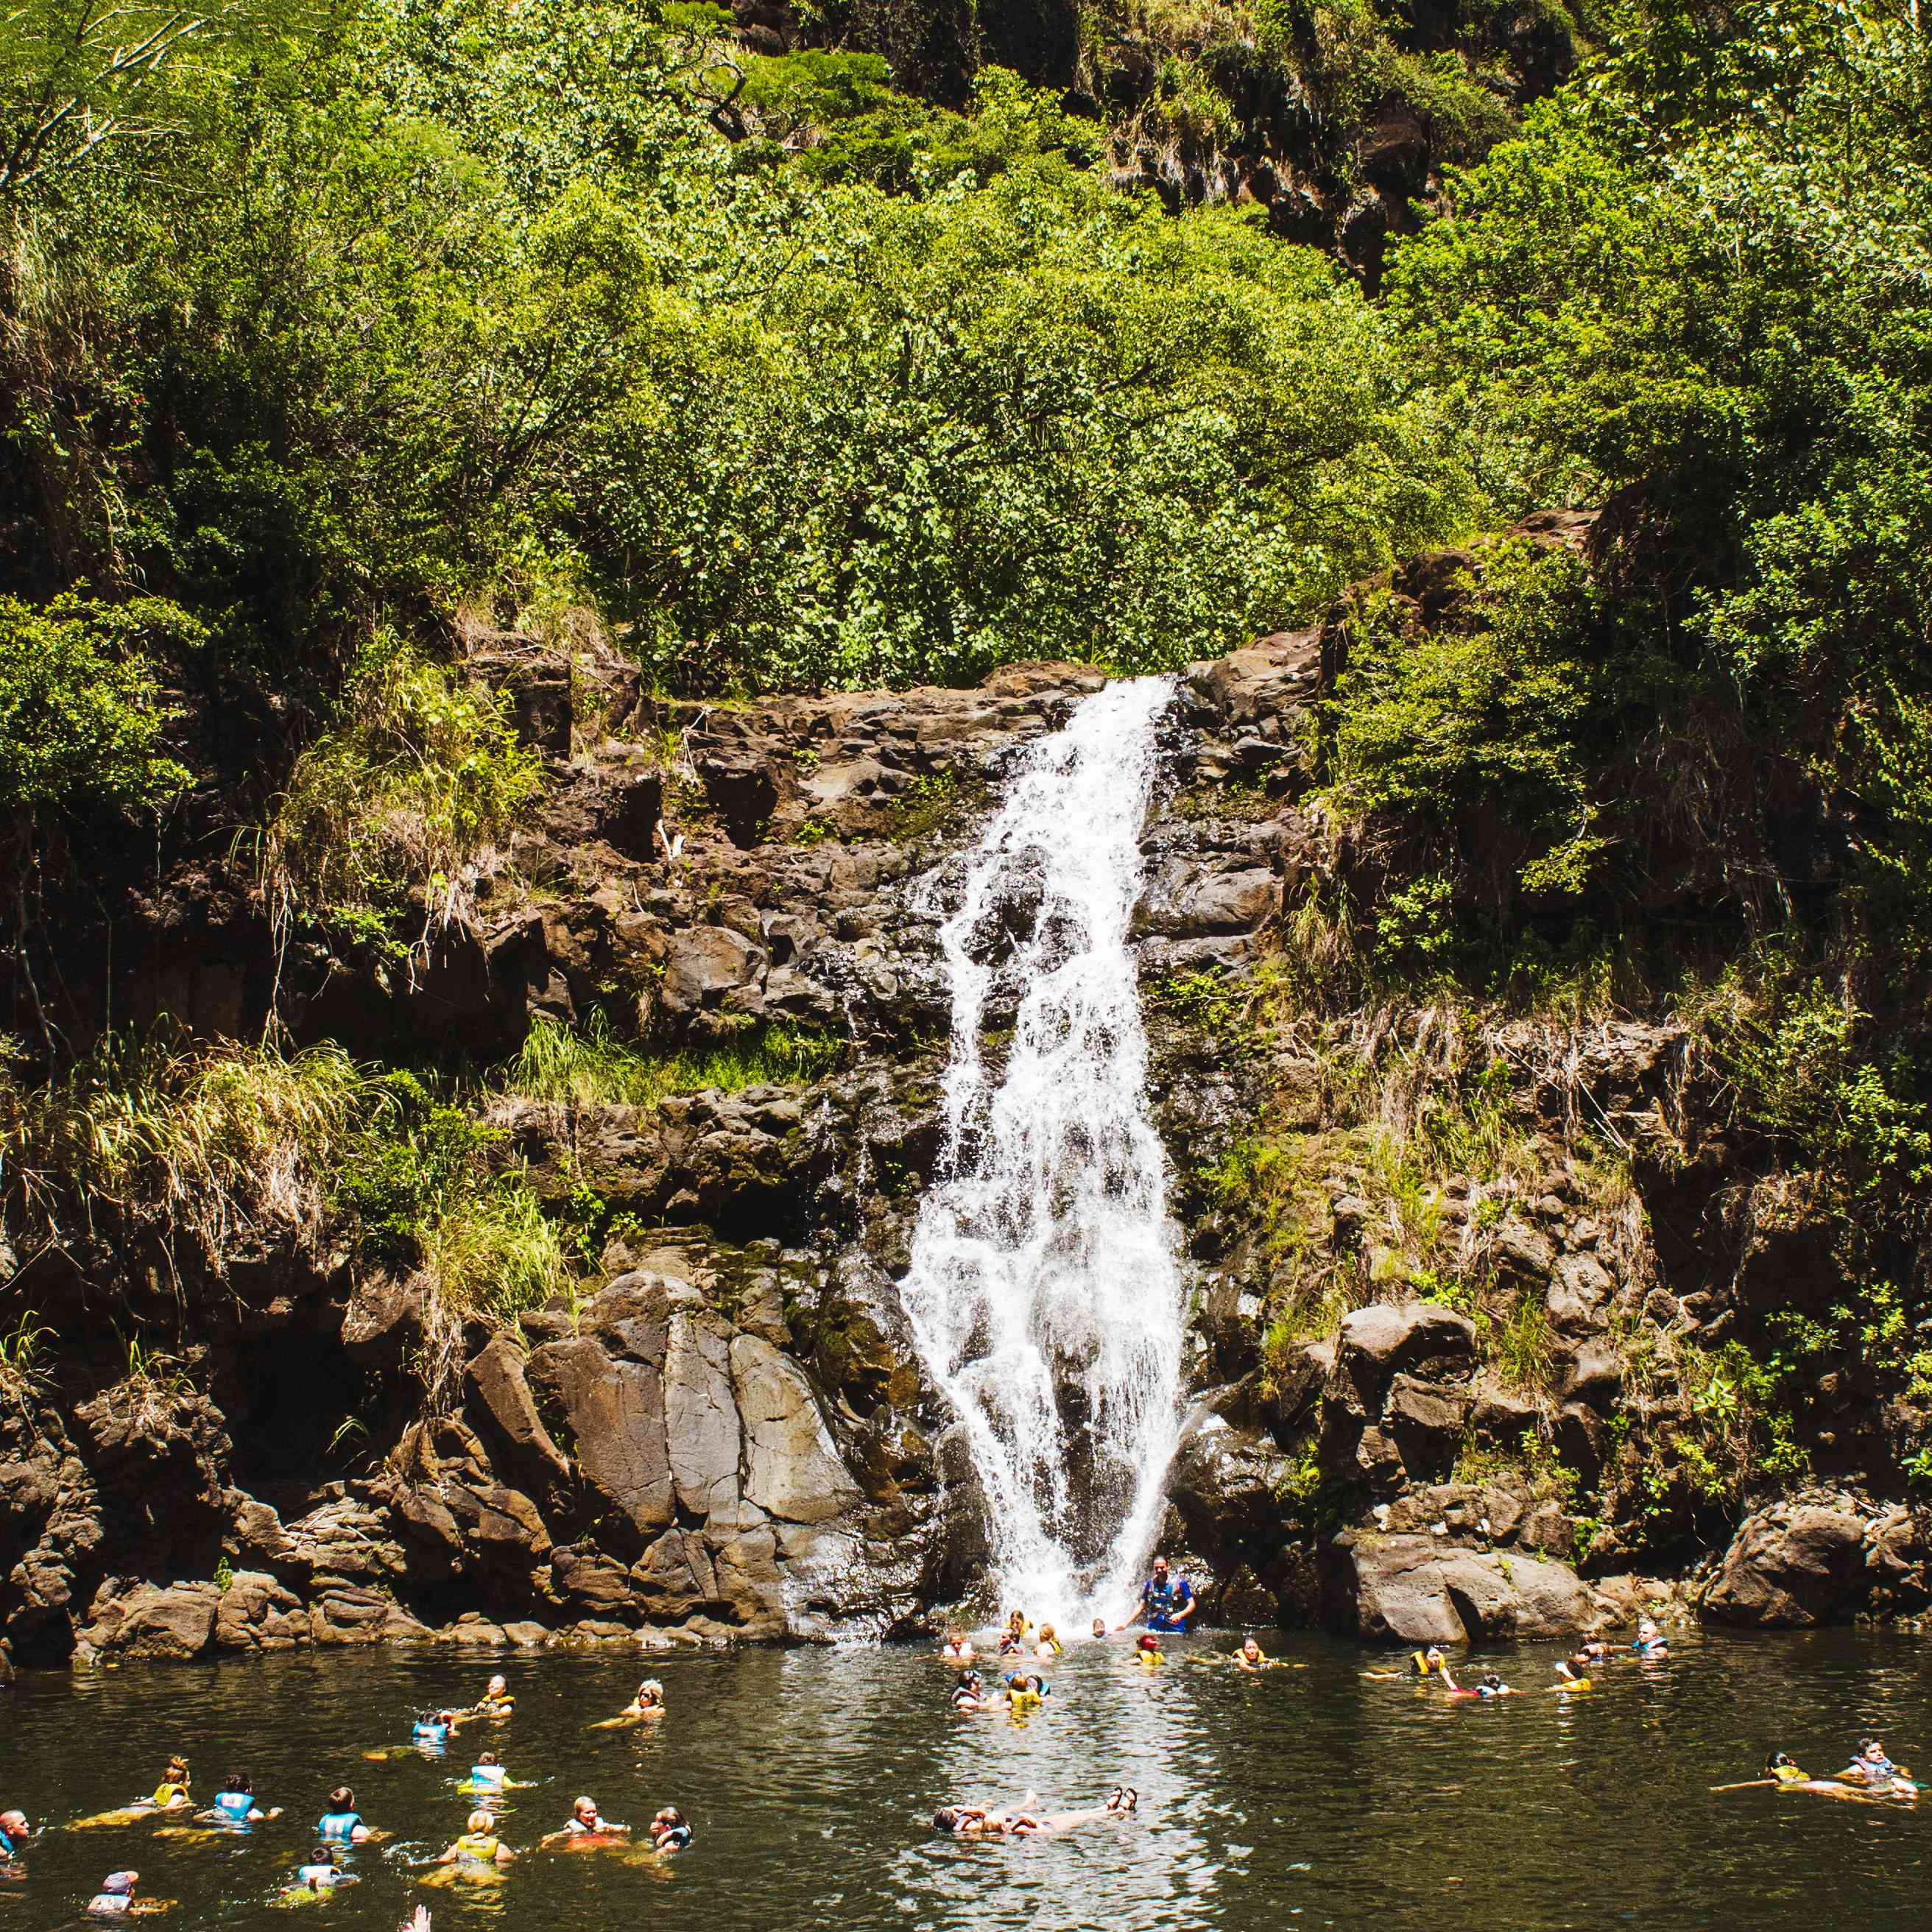 People swimming at Waimea Valley